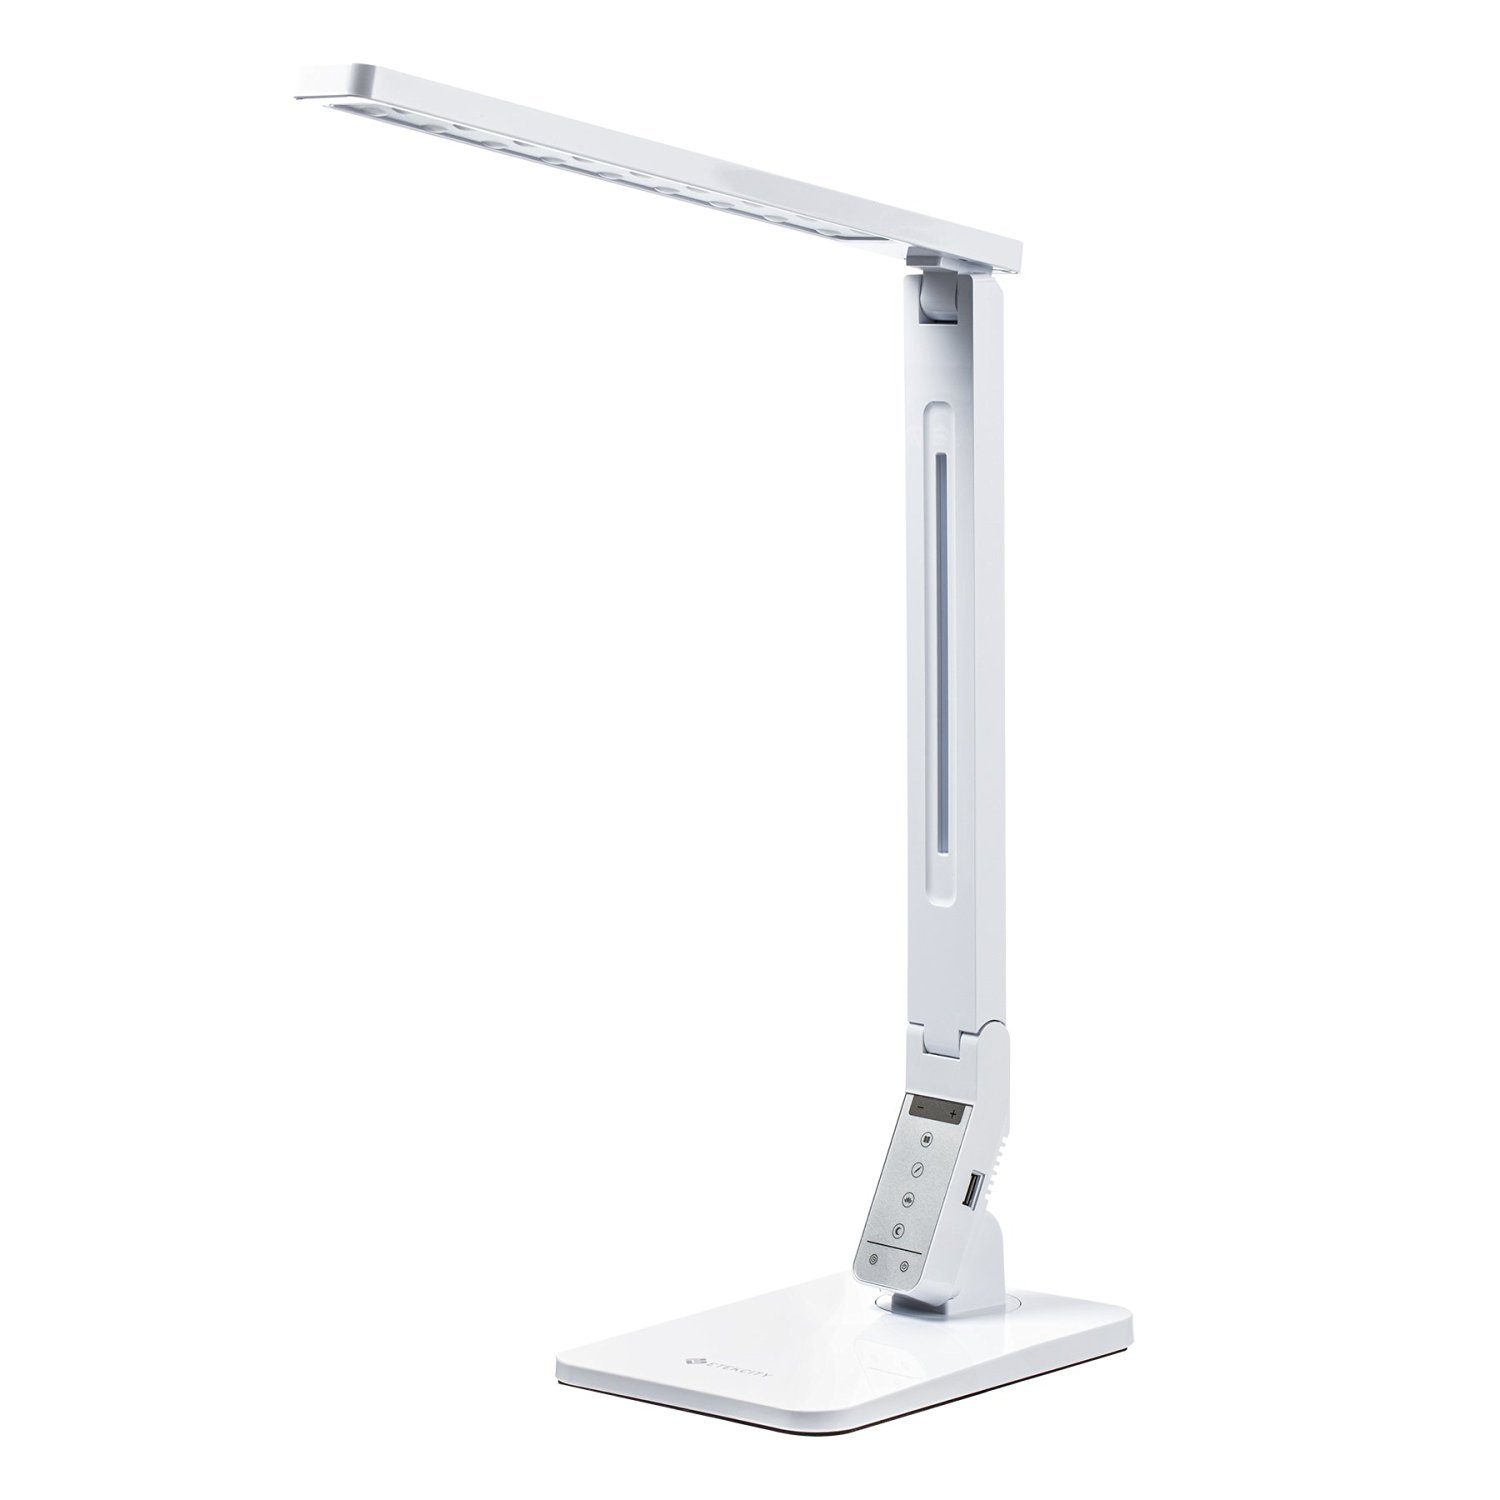 Etekcity LED Desk Lamp, 4 Lighting Modes, 5 Level Dimmer, Eye Care Dimmable Touch Control Table Lamps for Study, Office & Reading, with 5V1.5A USB